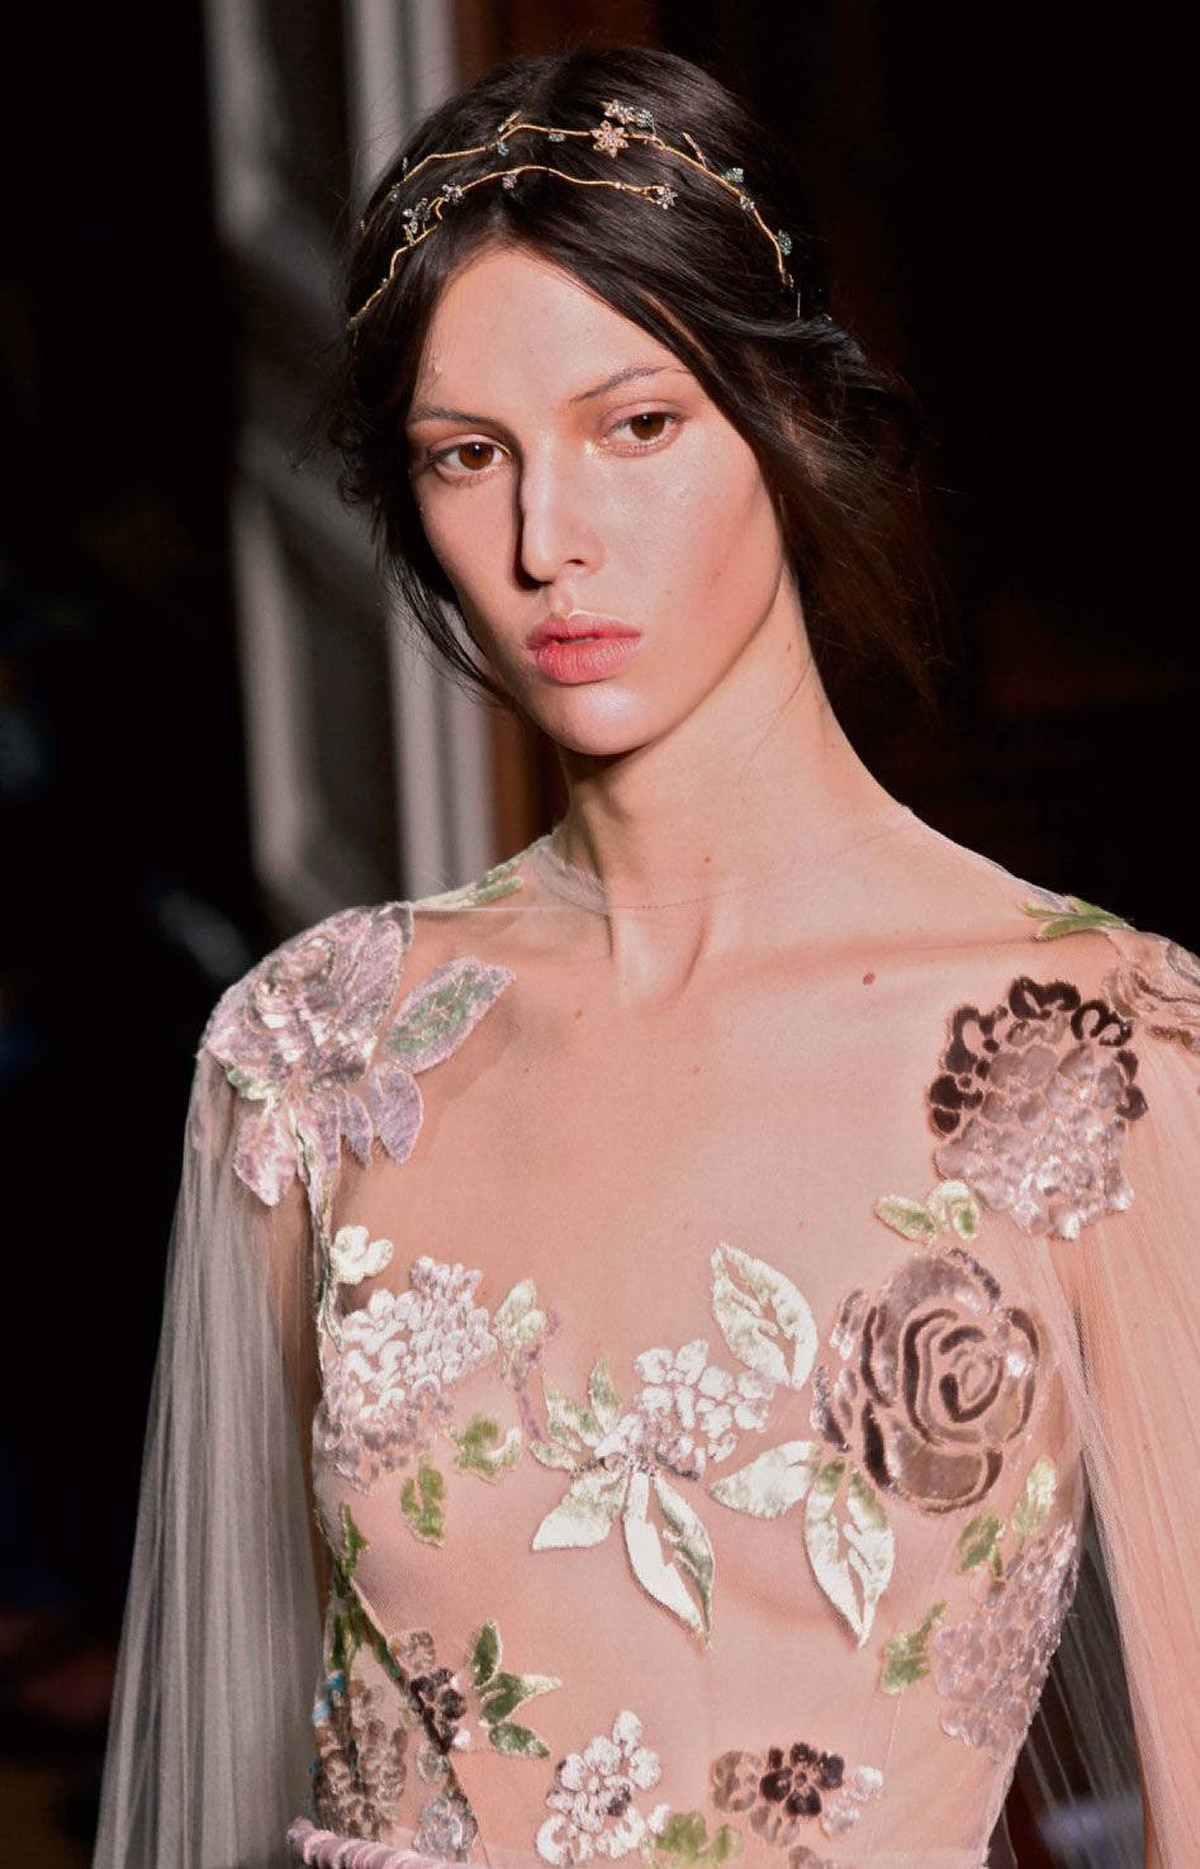 Embroidery from the Valentino 2011/12 fall couture collection.